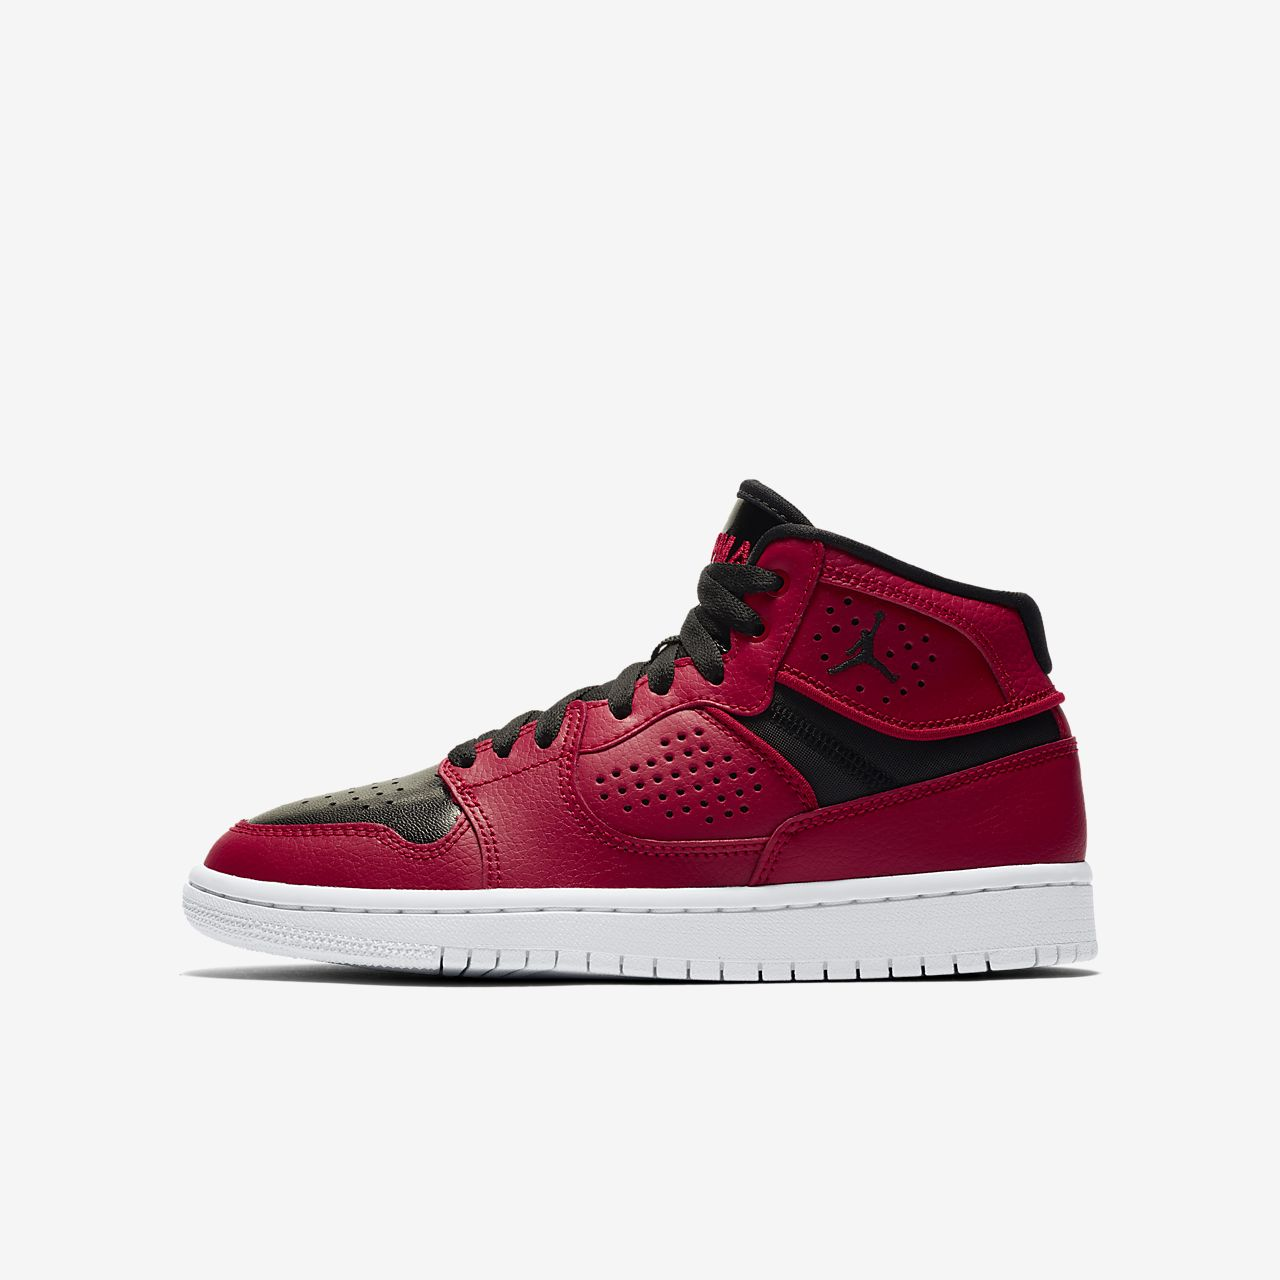 Women's Jordan Shoes.